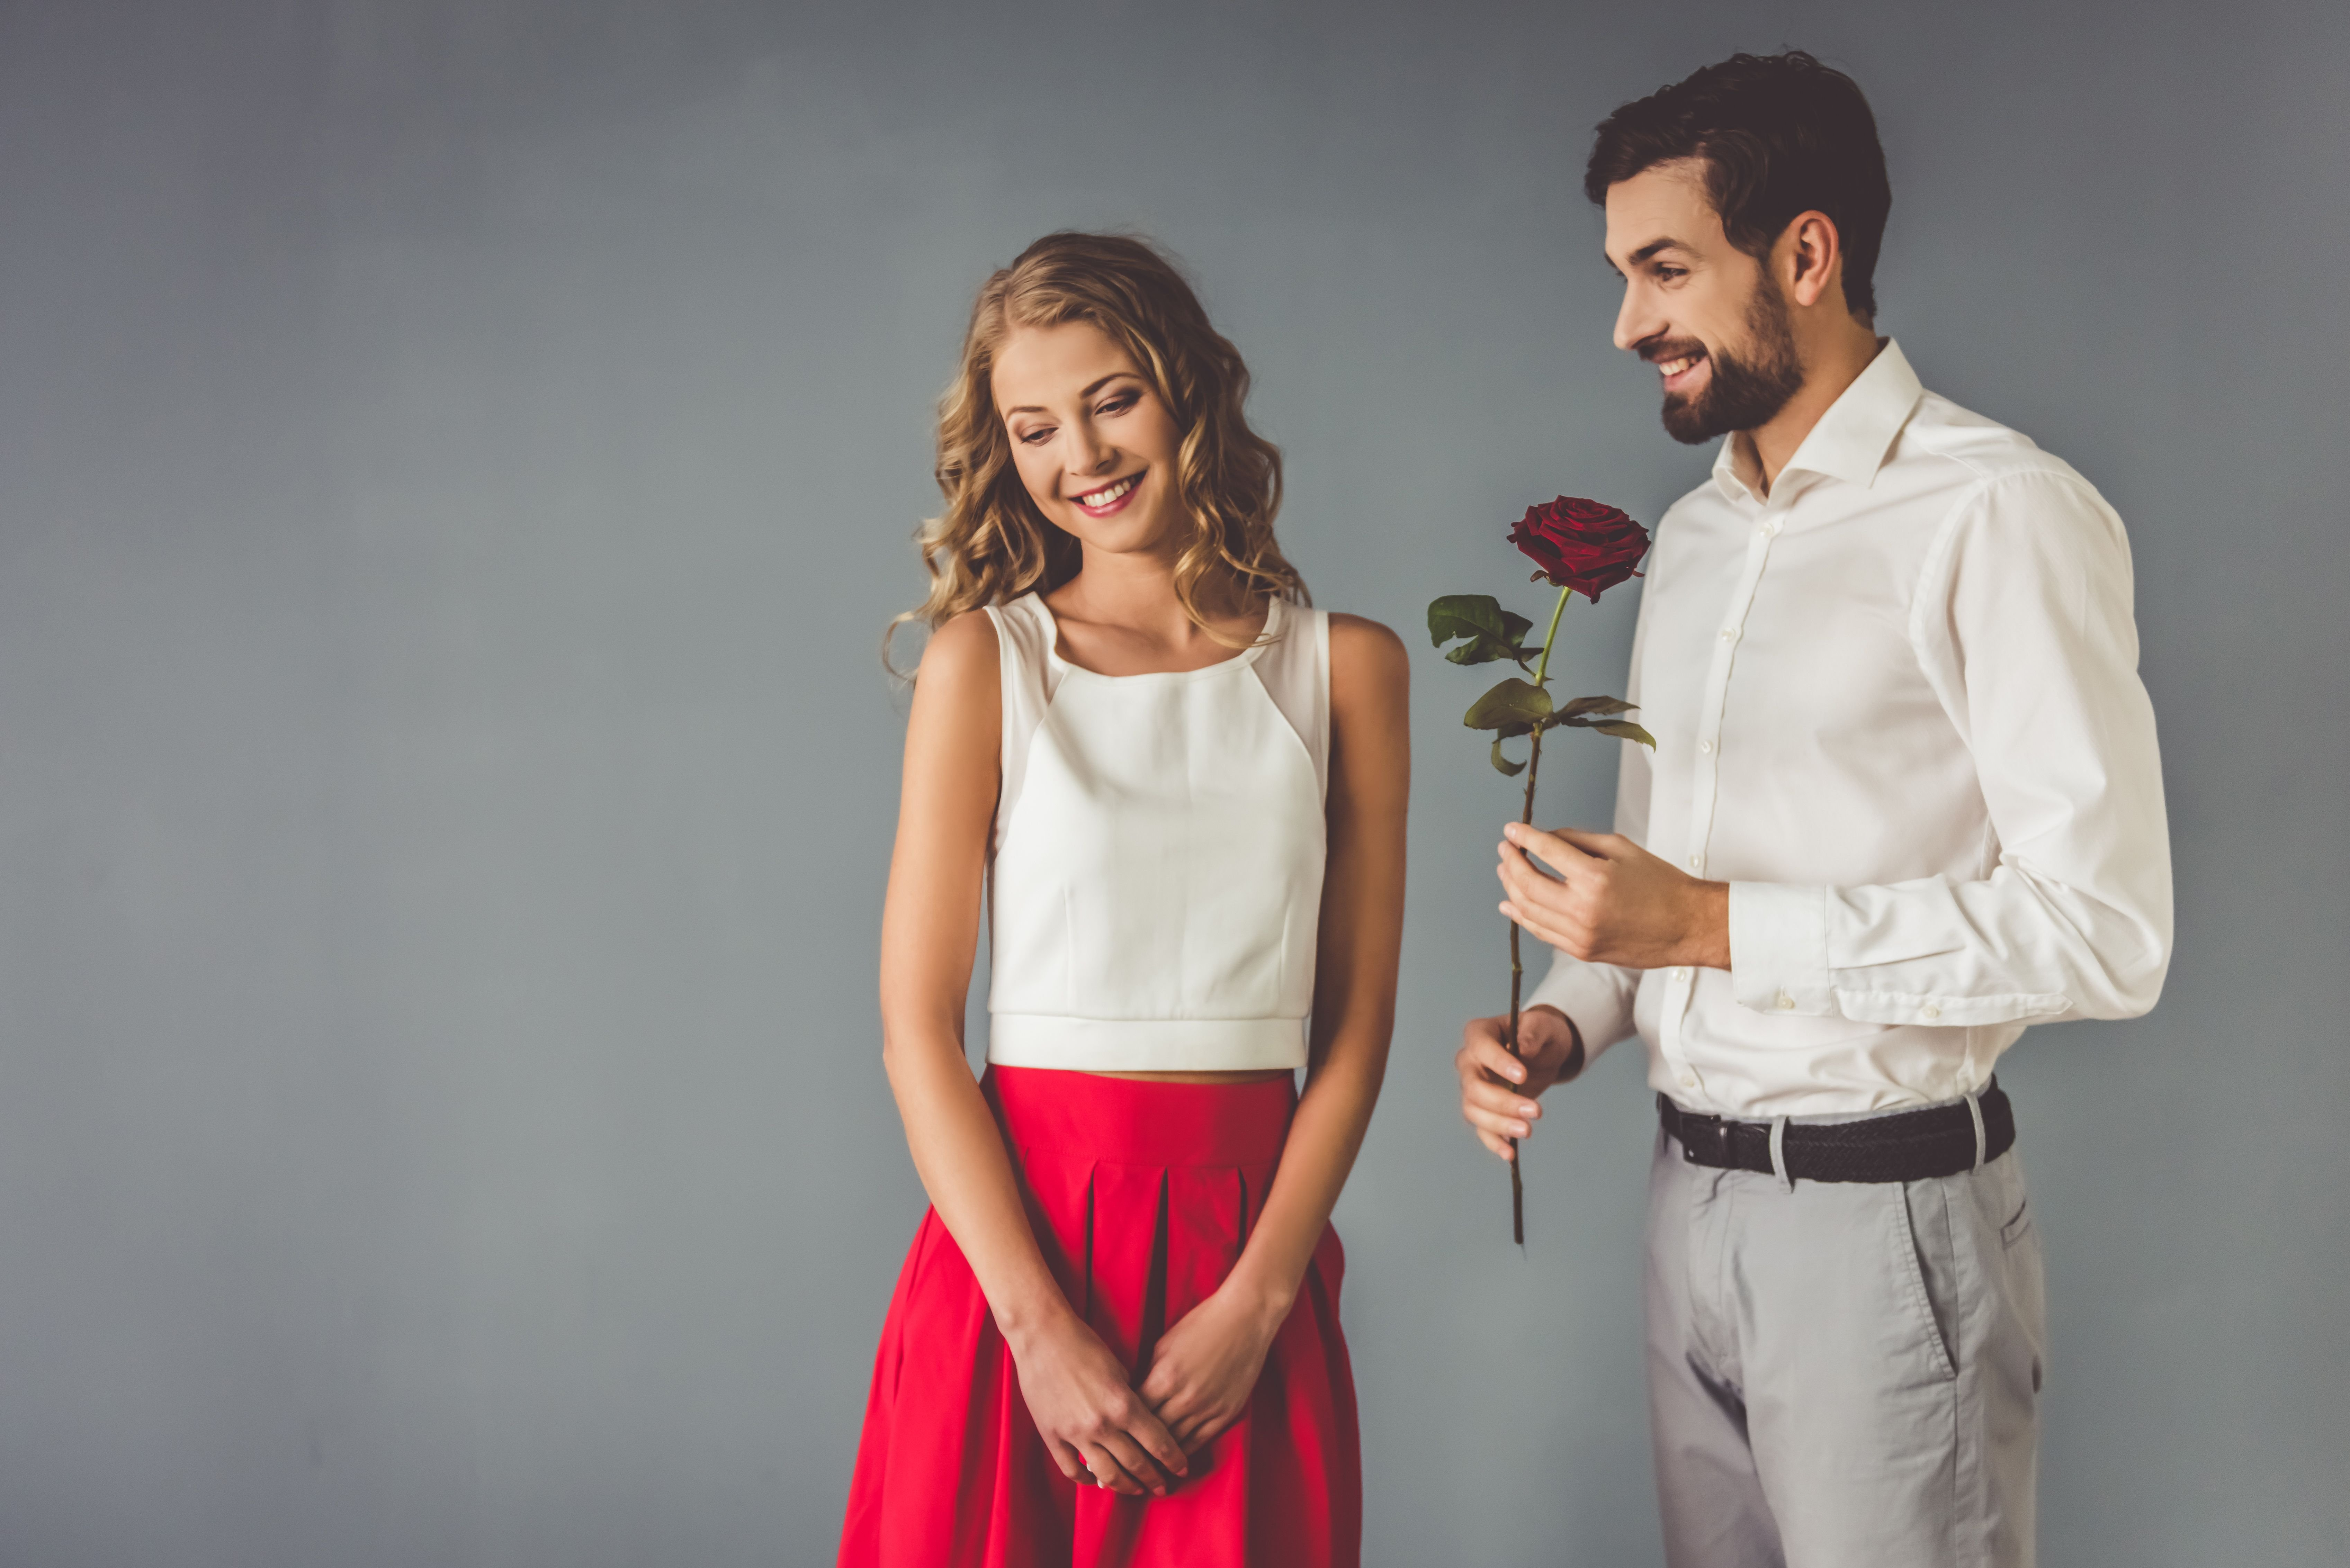 A man gives a woman red flowers.  Source: Shutterstock